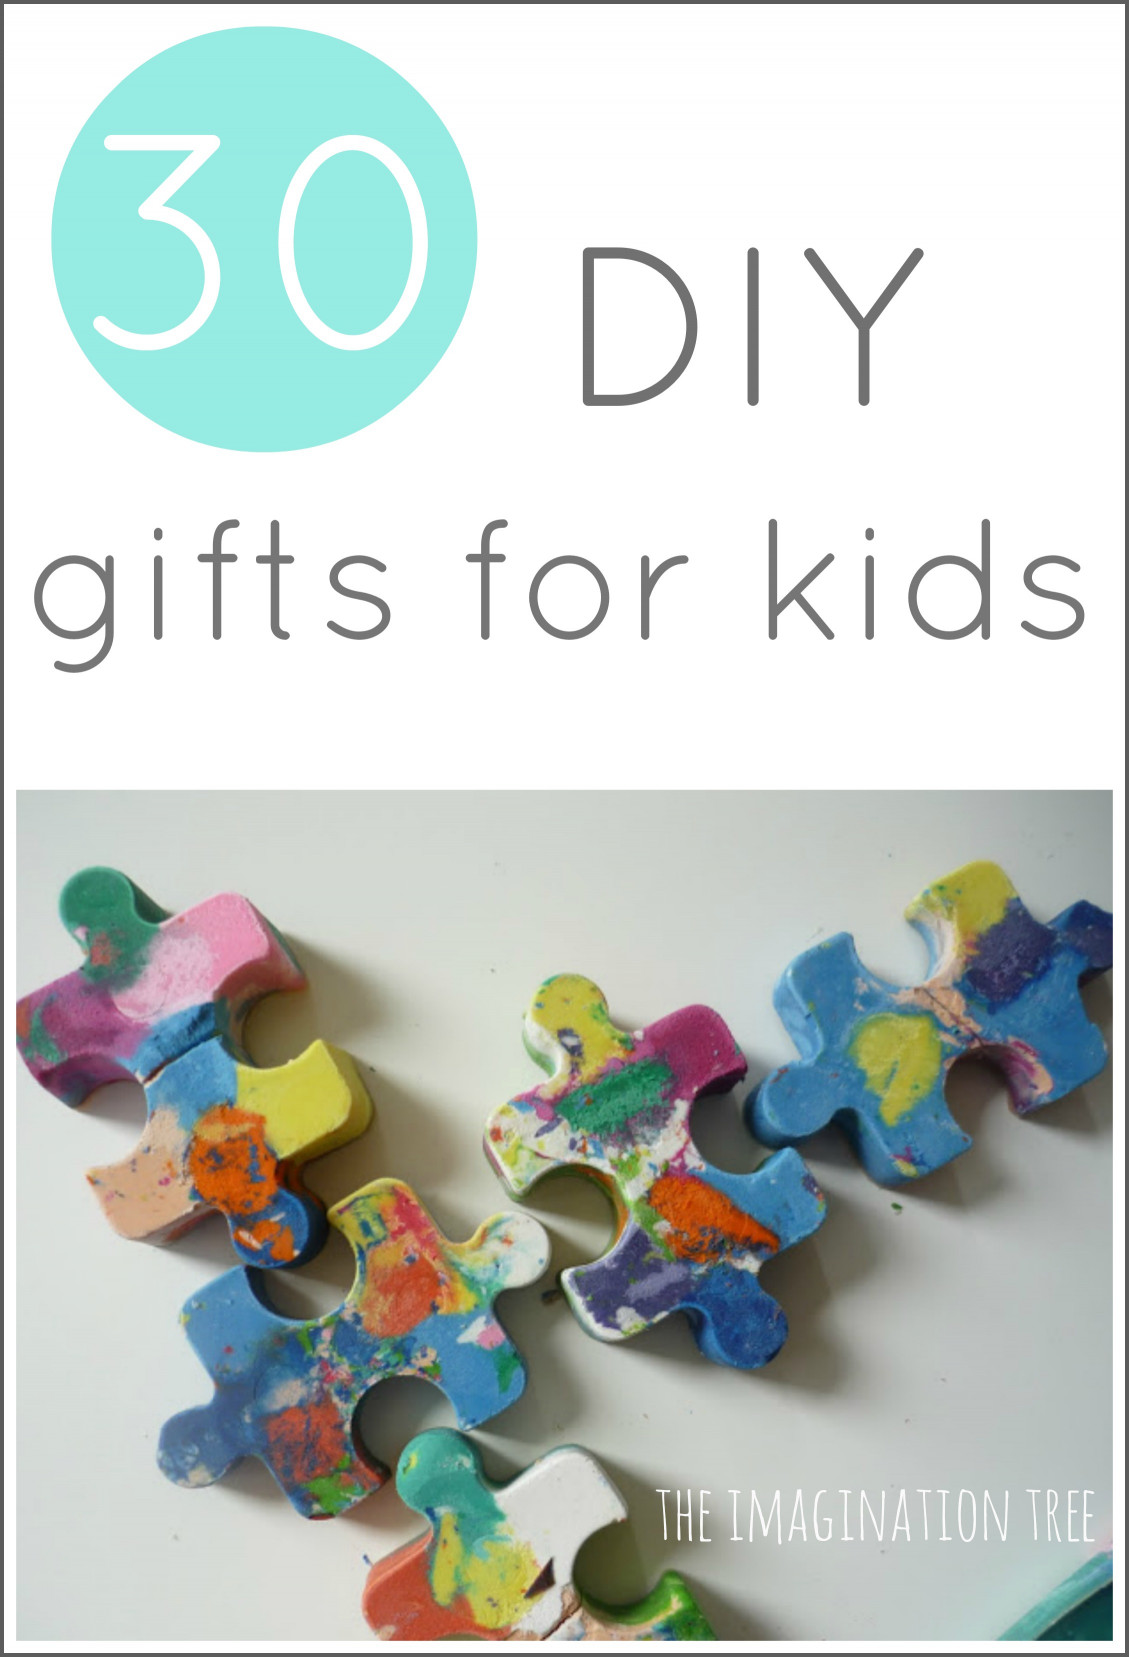 DIY Ideas For Kids  30 DIY Gifts to Make for Kids The Imagination Tree